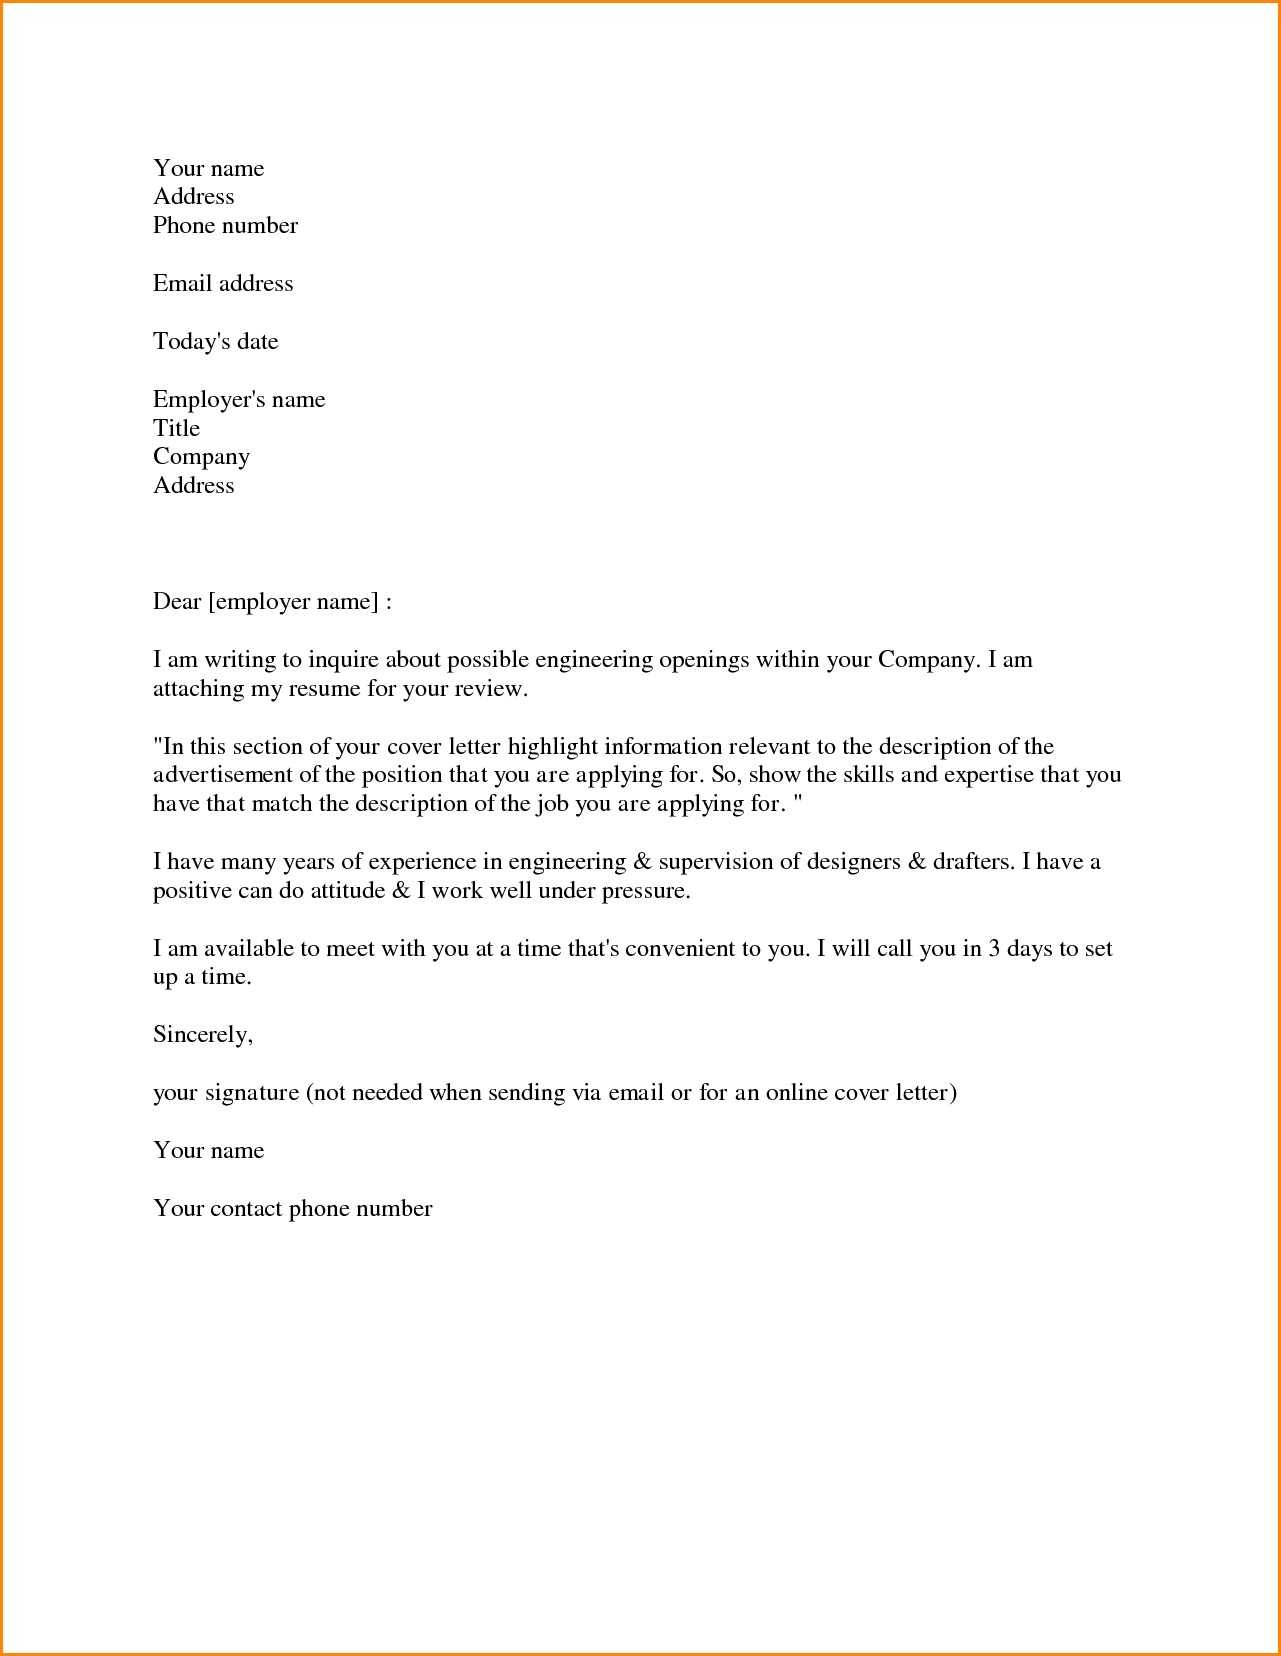 sample-motivation-letter-for-a-job-save-best-ideas-cover-letter-sample-for-job-application-doc-also-9-of-sample-motivation-letter-for-a-job